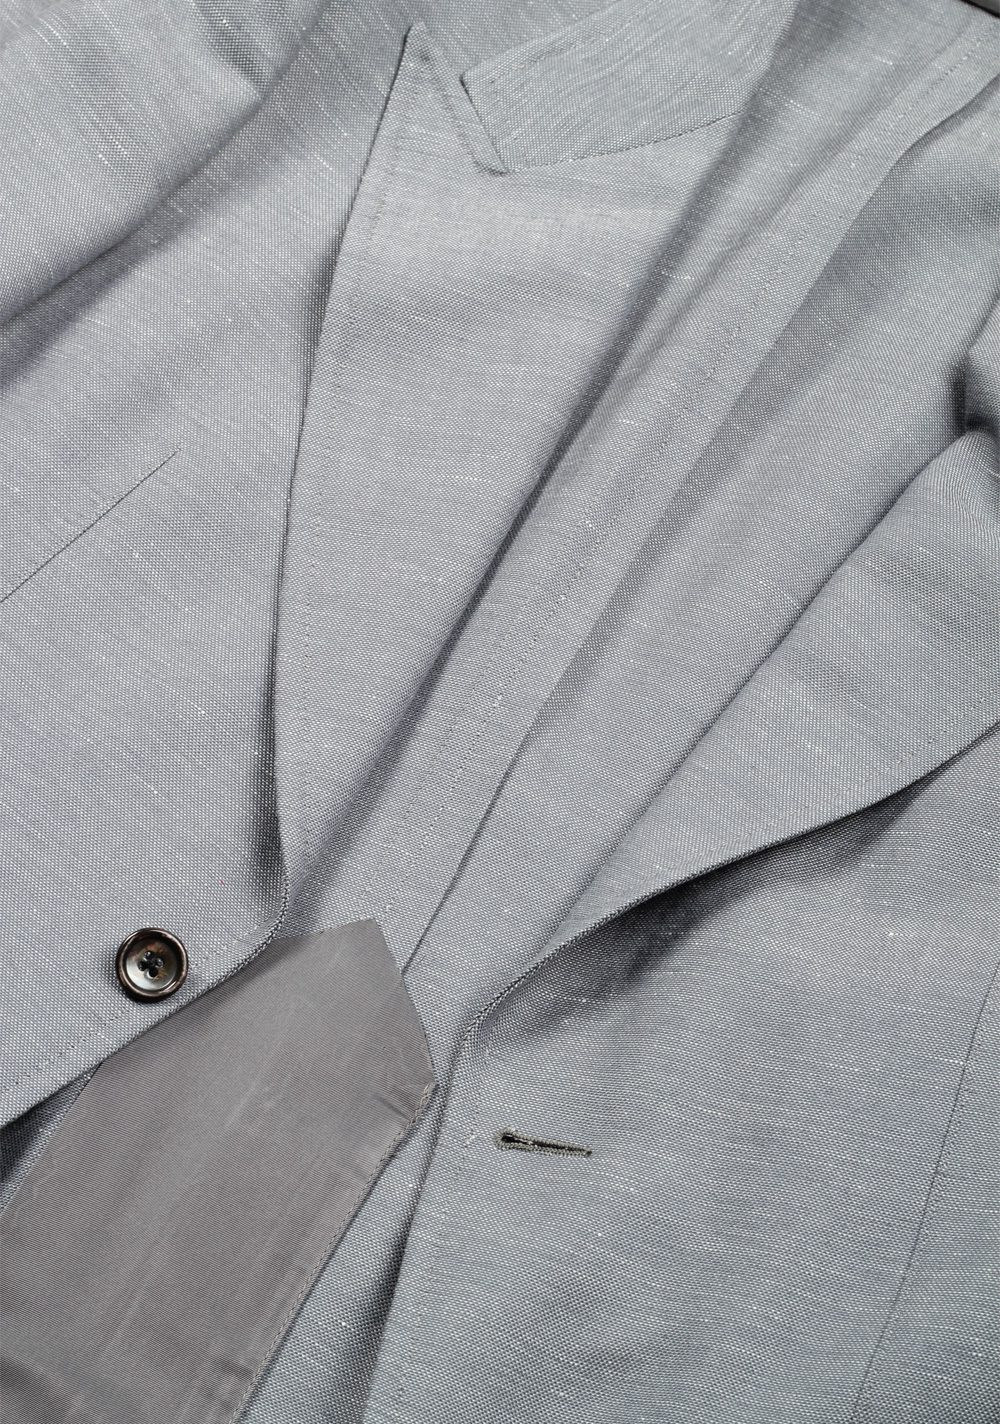 TOM FORD Shelton Gray Suit Size 46 / 36R U.S. In Wool Linen Mohair | Costume Limité